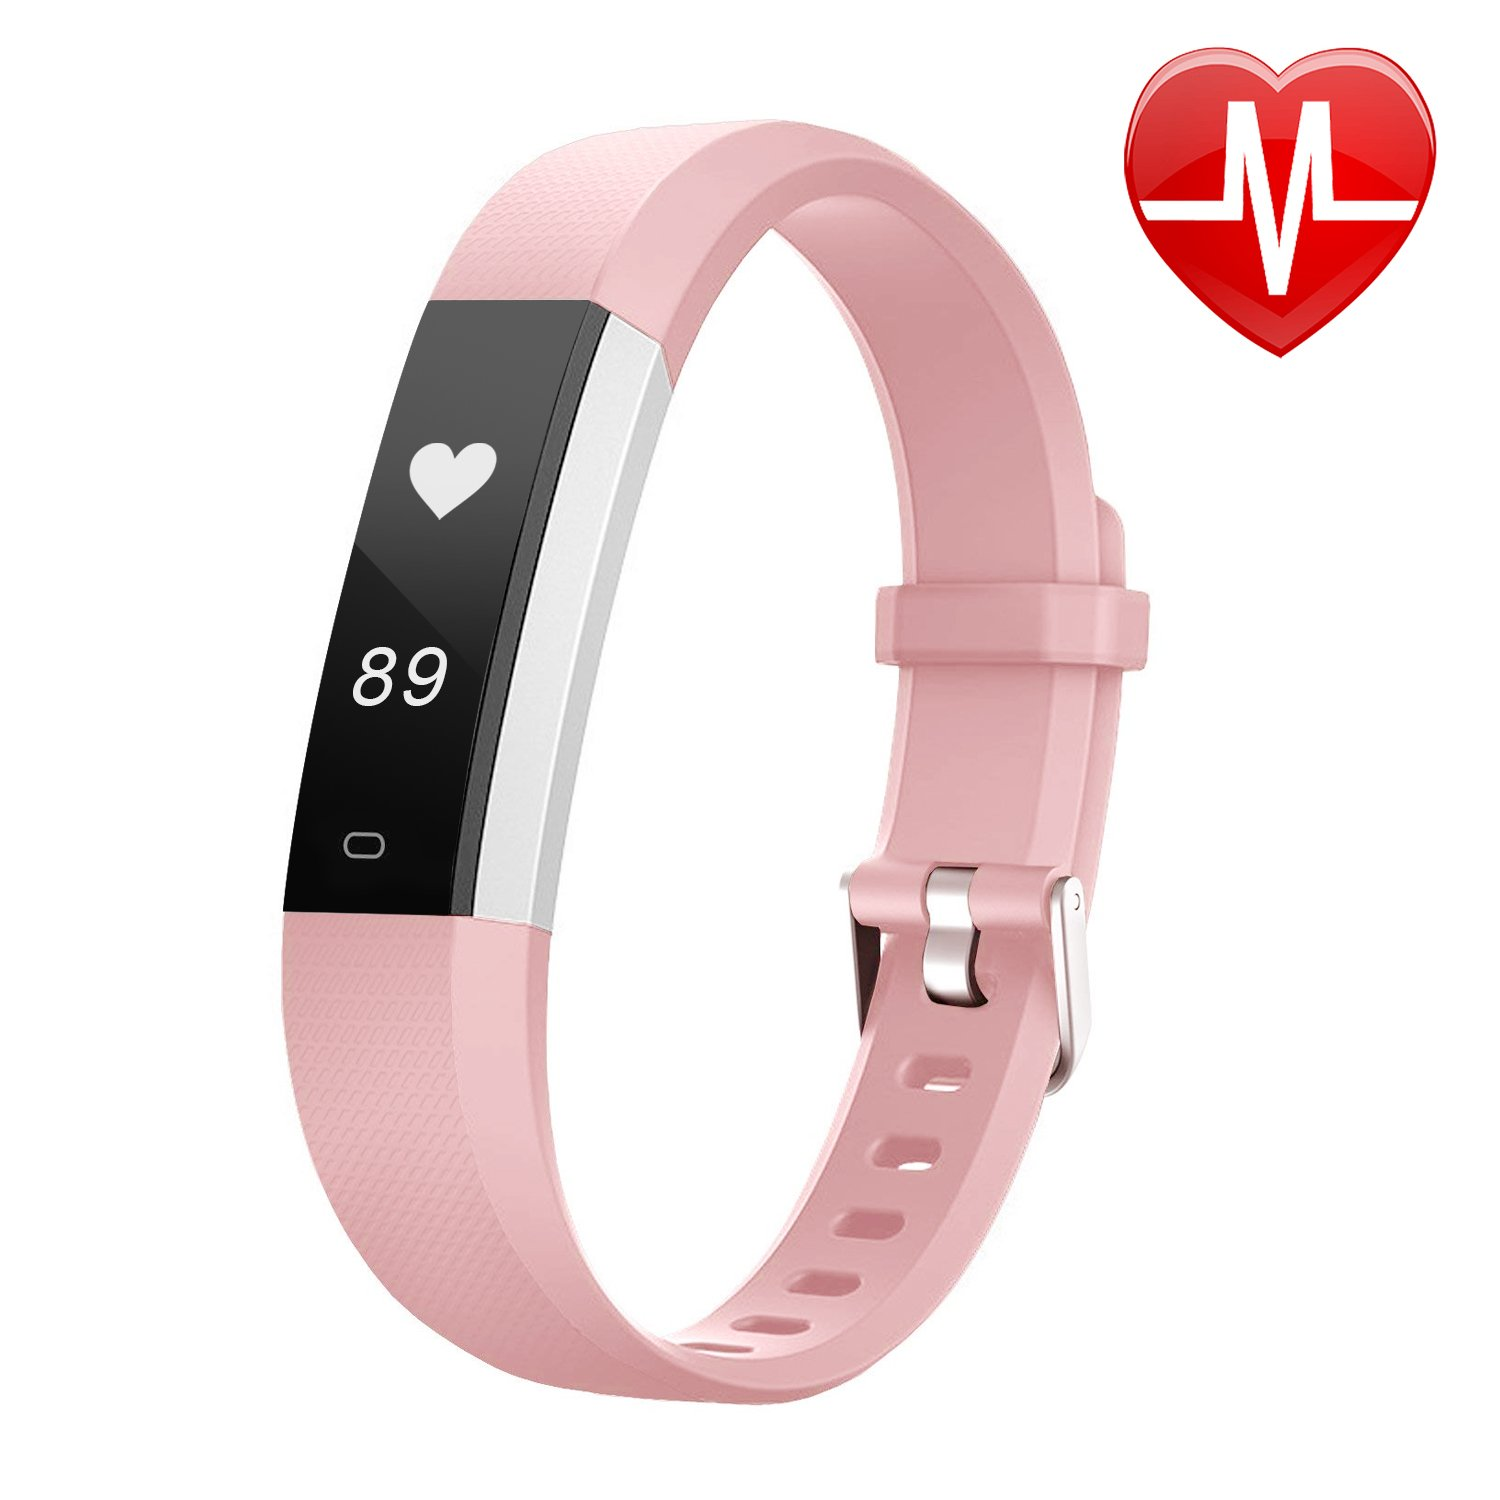 Letsfit Fitness Tracker HR, Sports Fitness Watch with Heart Rate Monitor and Sleep Monitor, Pedometer Watch, Step Counter, Bluetooth Smart Band for Kids Women and Men, pink